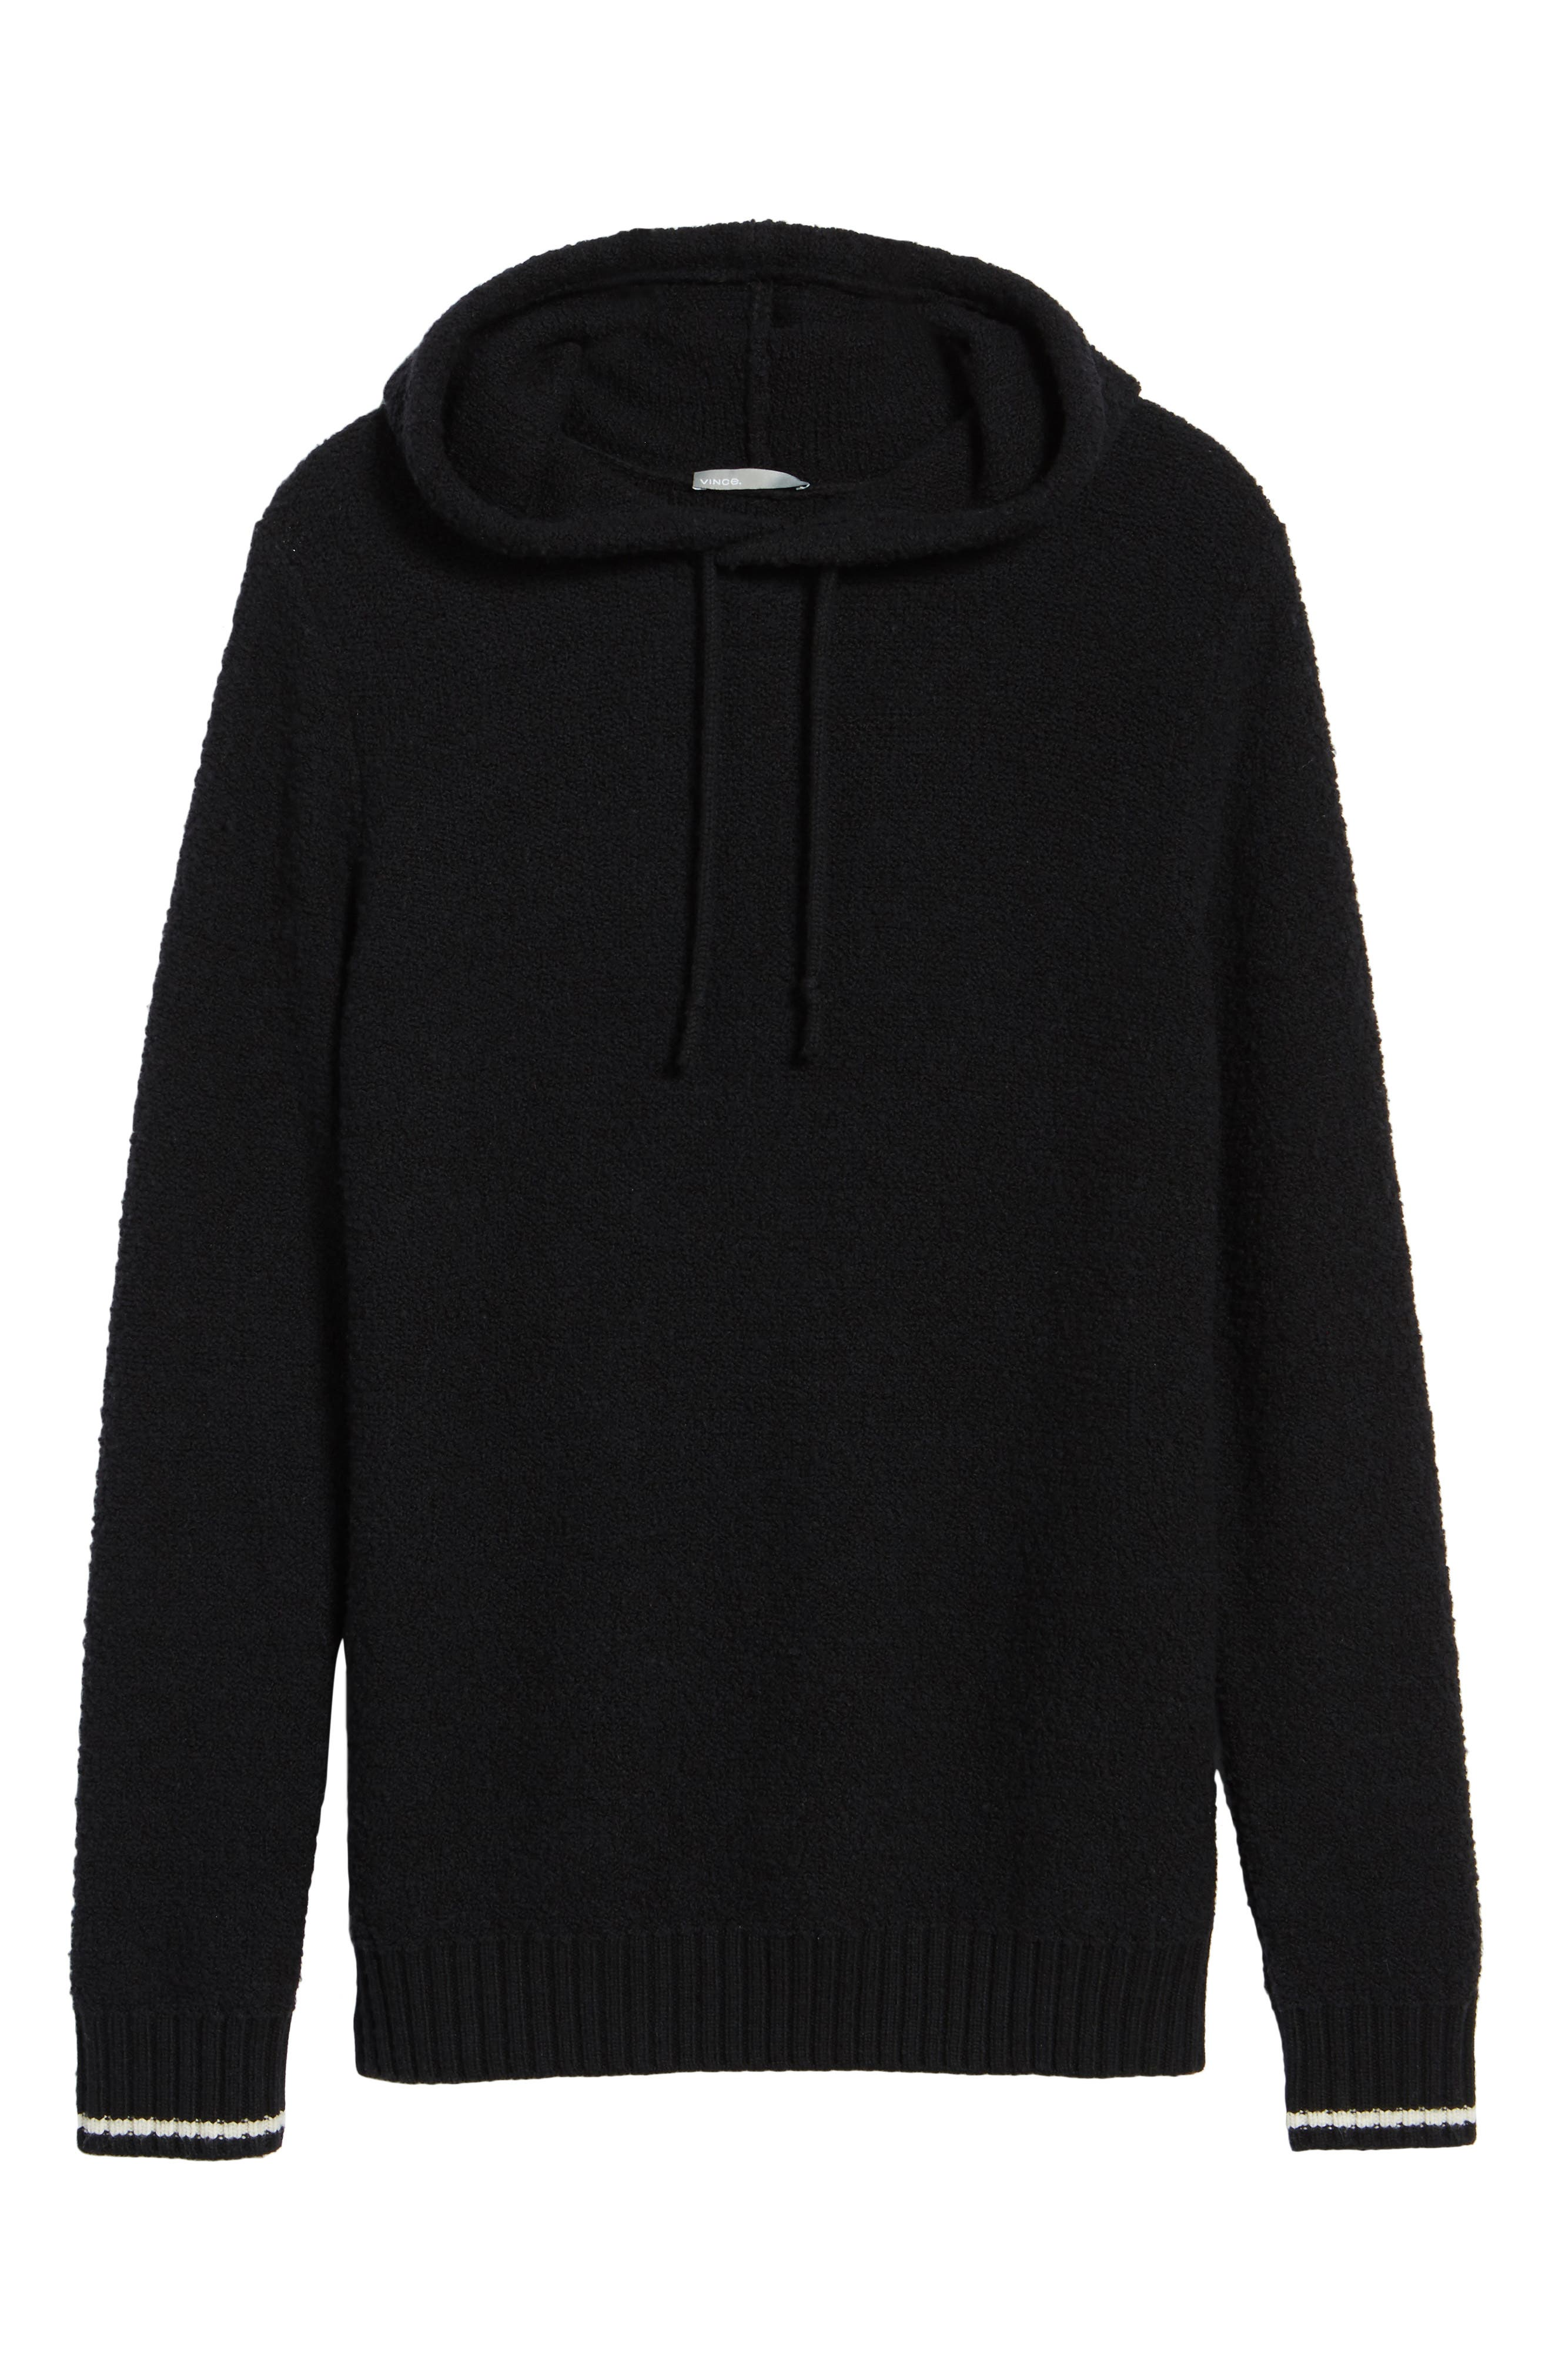 Wool Fleece Pullover Hoodie,                             Alternate thumbnail 6, color,                             BLACK